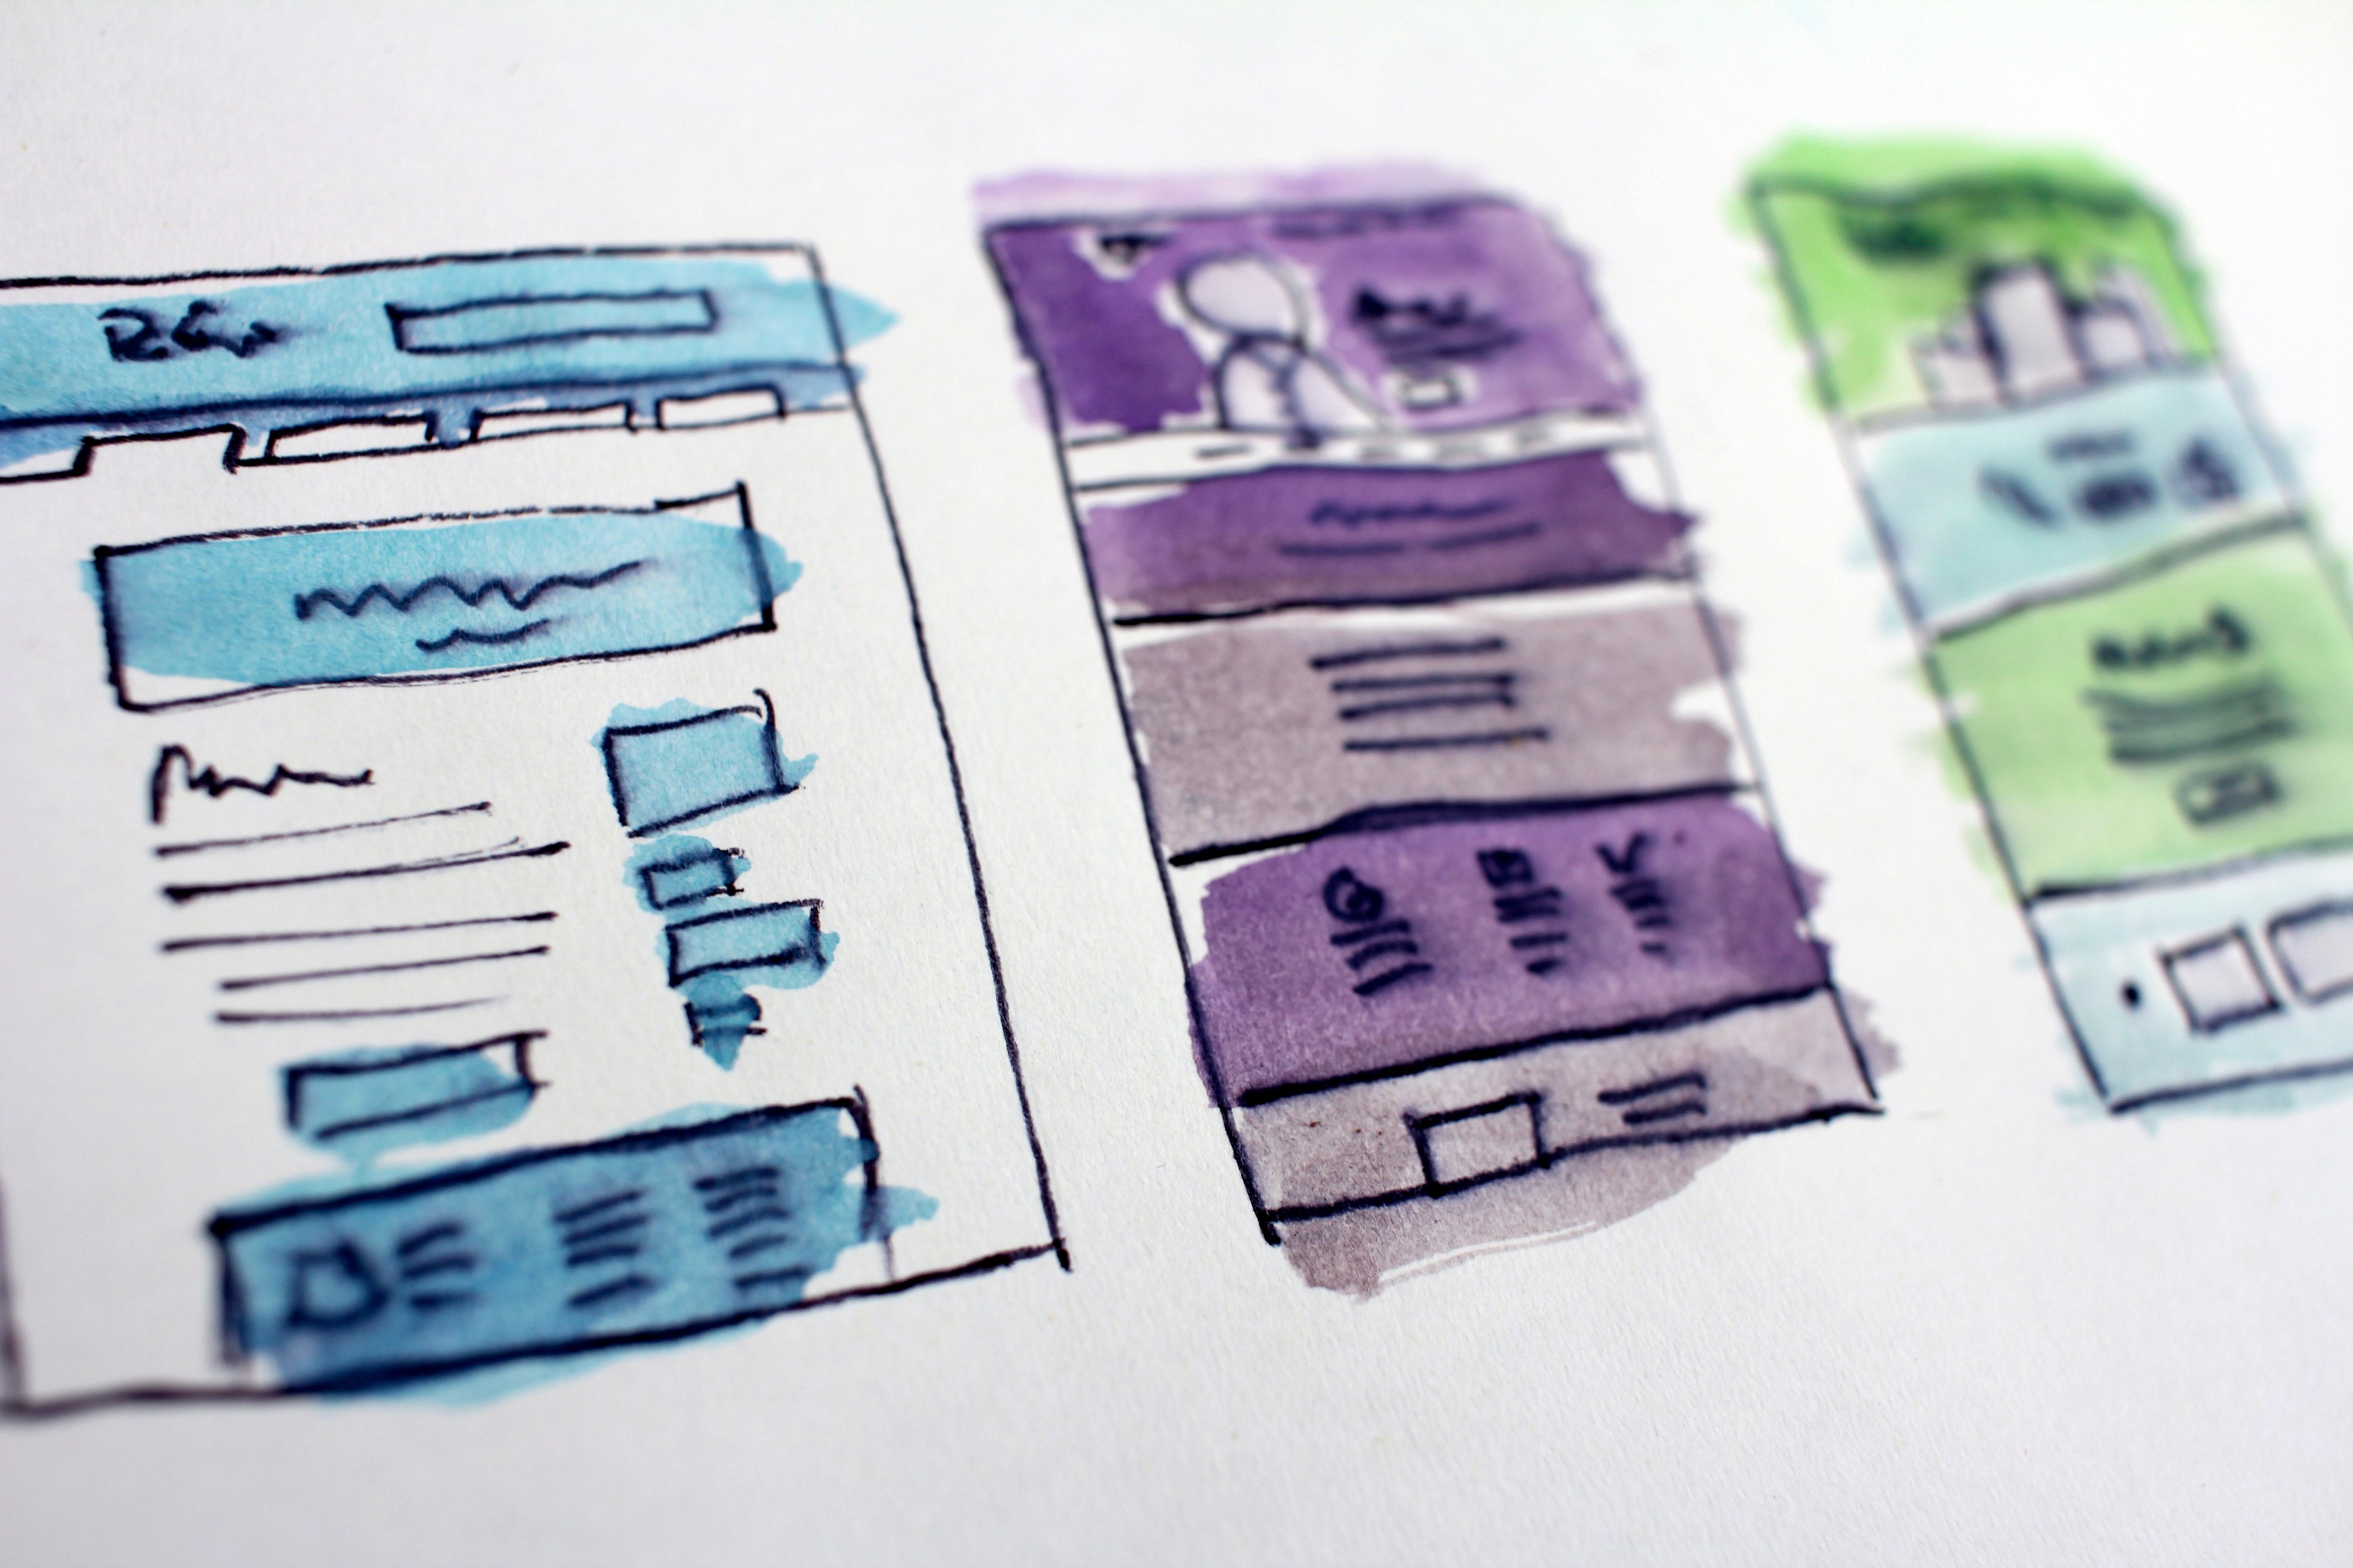 Website Wireframes showing content elements